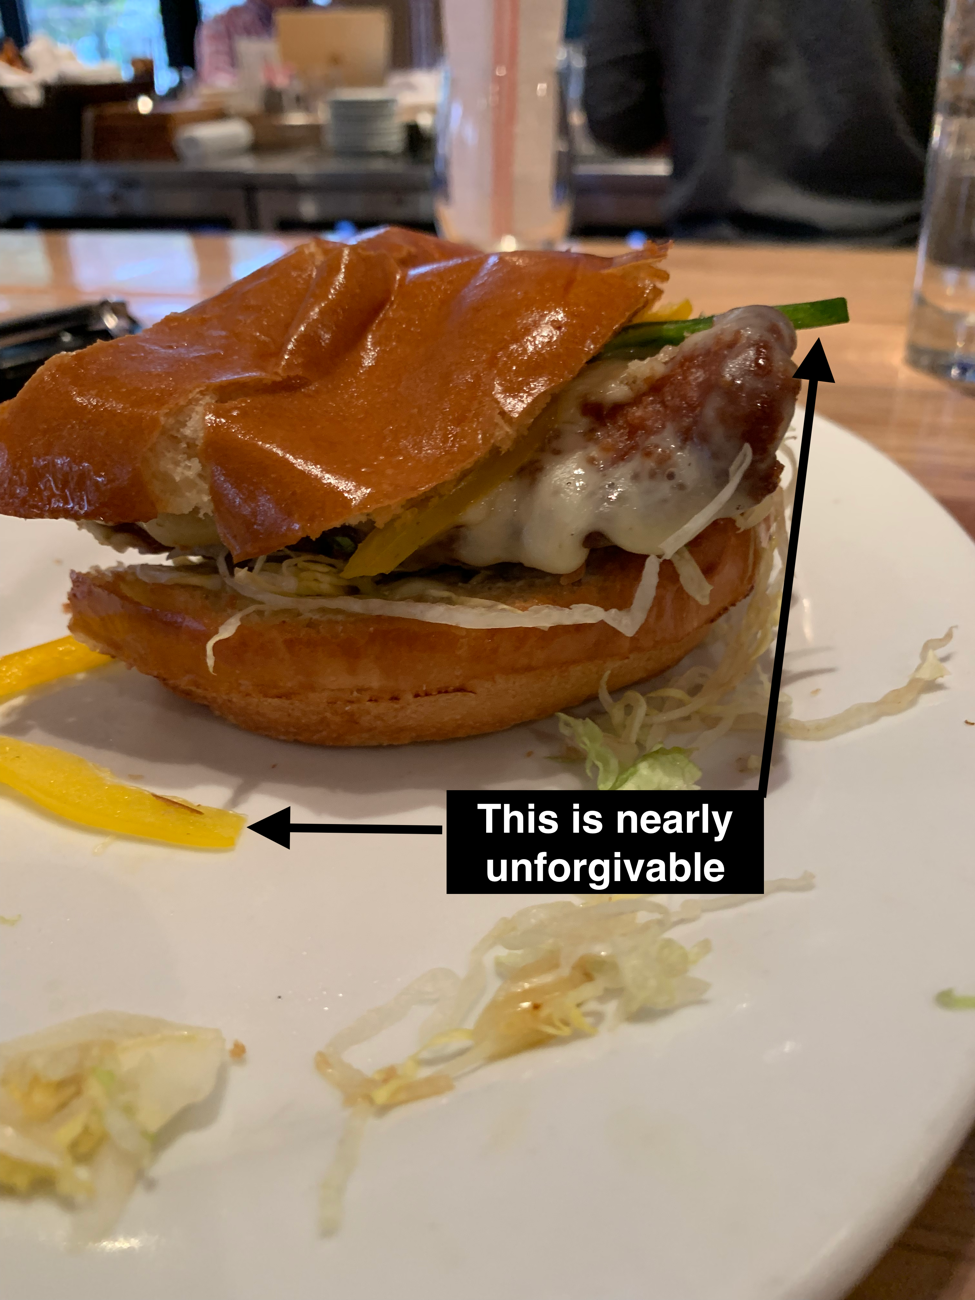 Zinburger's Southwest Fried Chicken Sandwich, featuring the sweet peppers our correspondent found so difficult to swallow. Photo Drew Calamaro /  Virginia Law Weekly